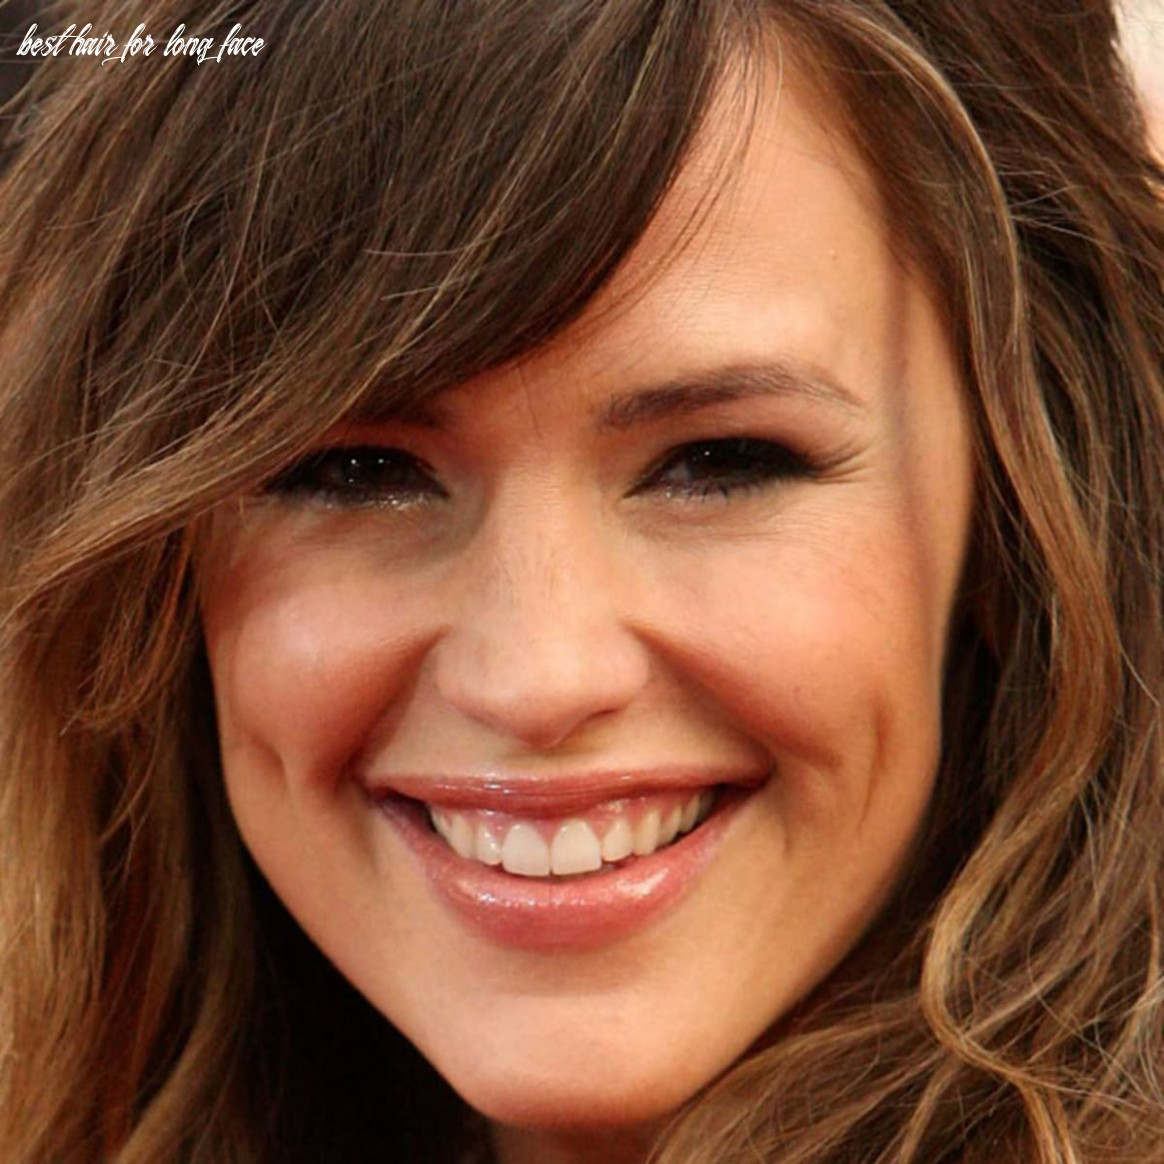 Hairstyles for long faces and curly hair: best cuts hairstylist